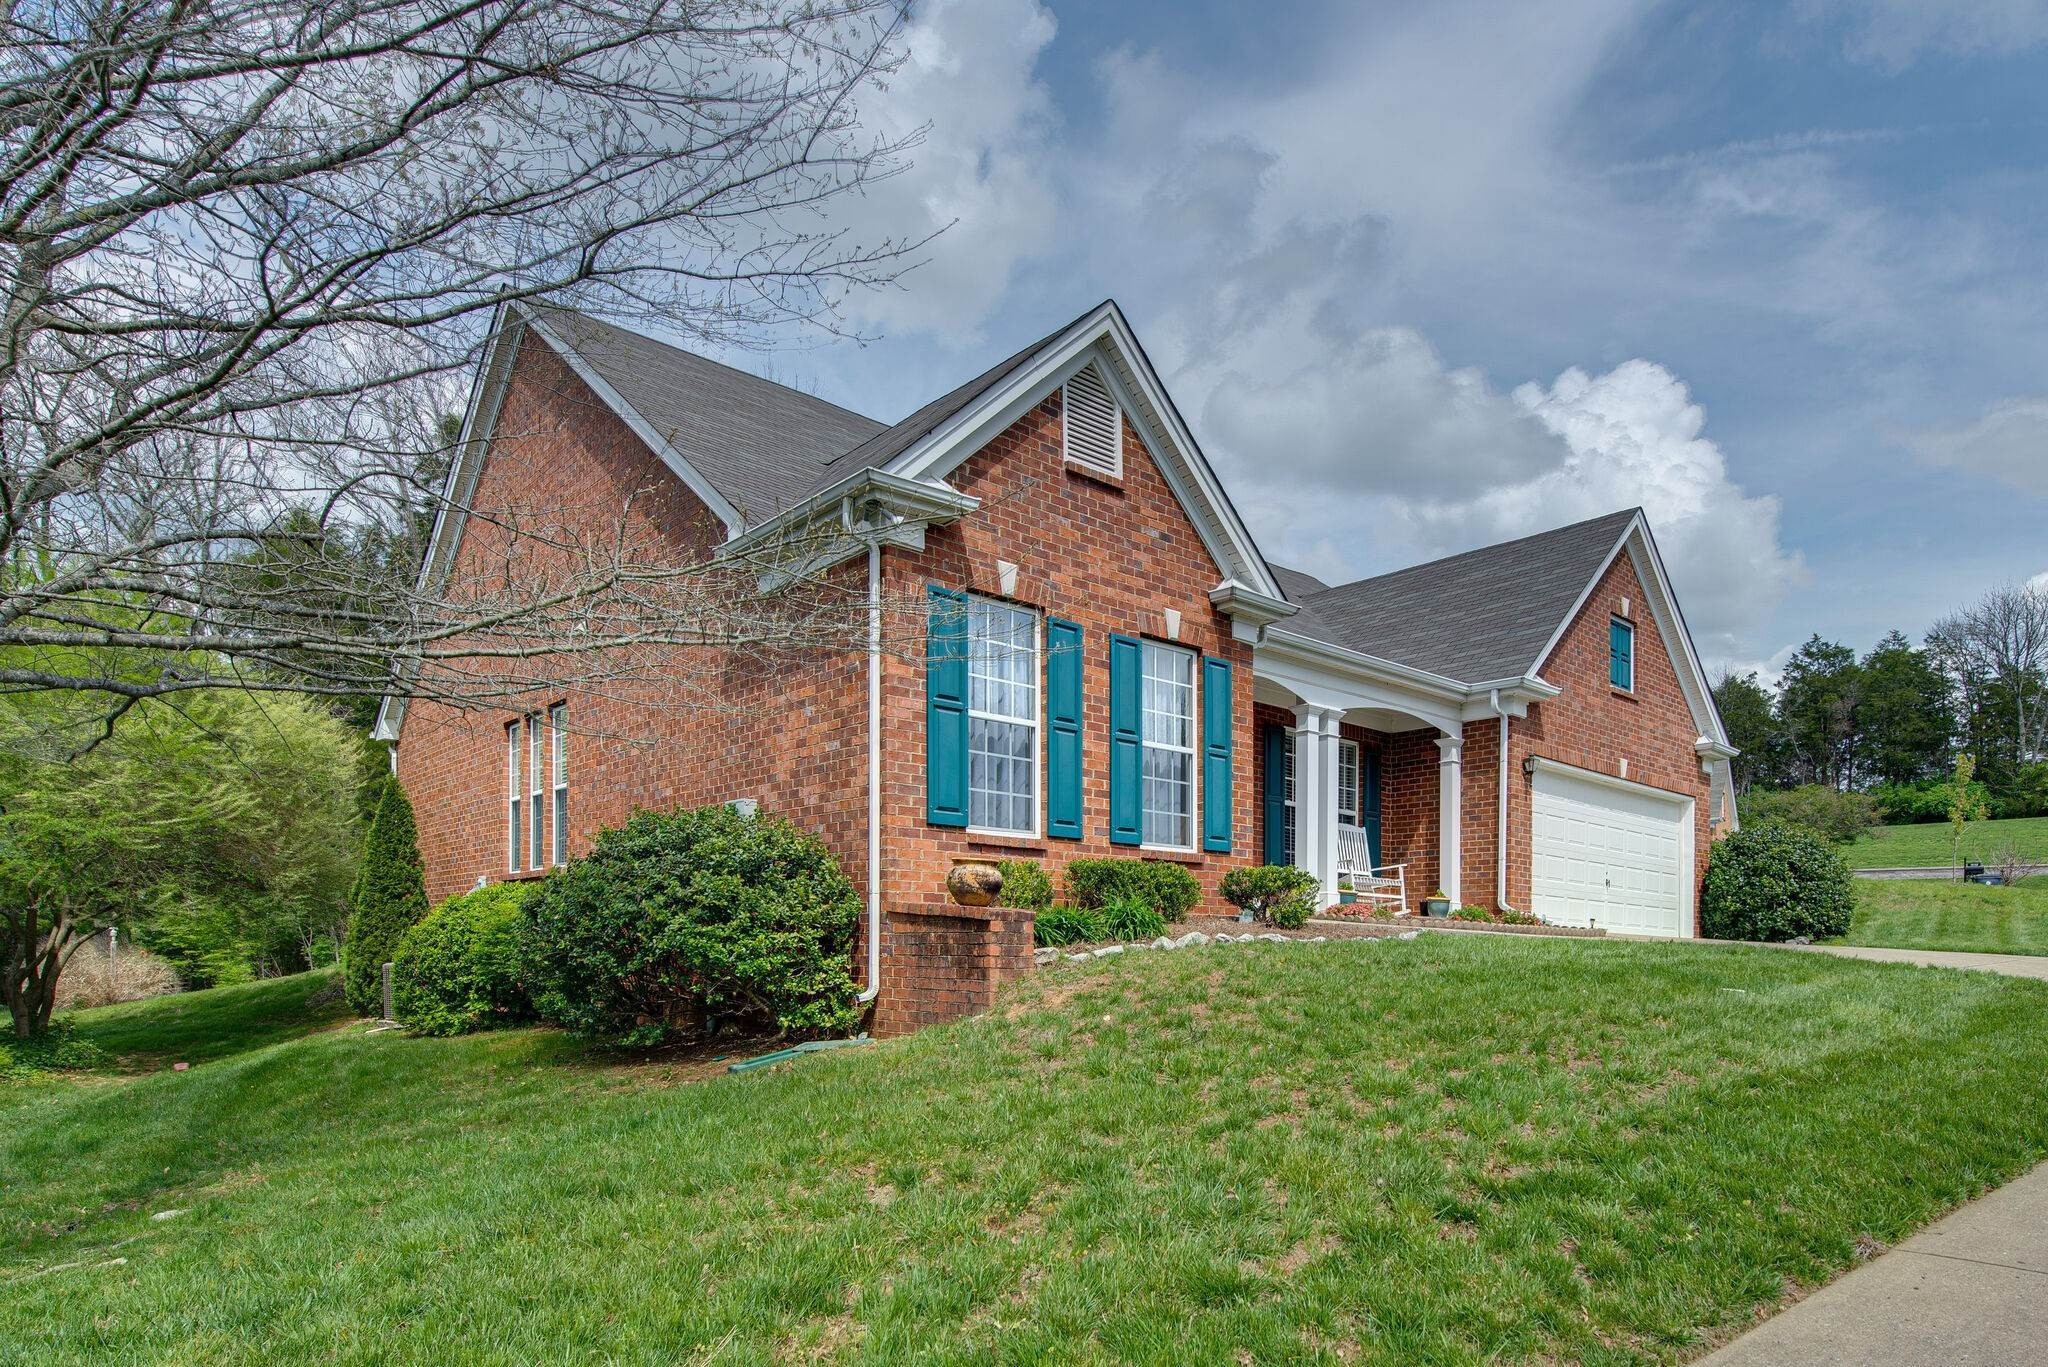 Single Family Homes for Sale at 1528 Gesshe Court Brentwood, Tennessee 37027 United States